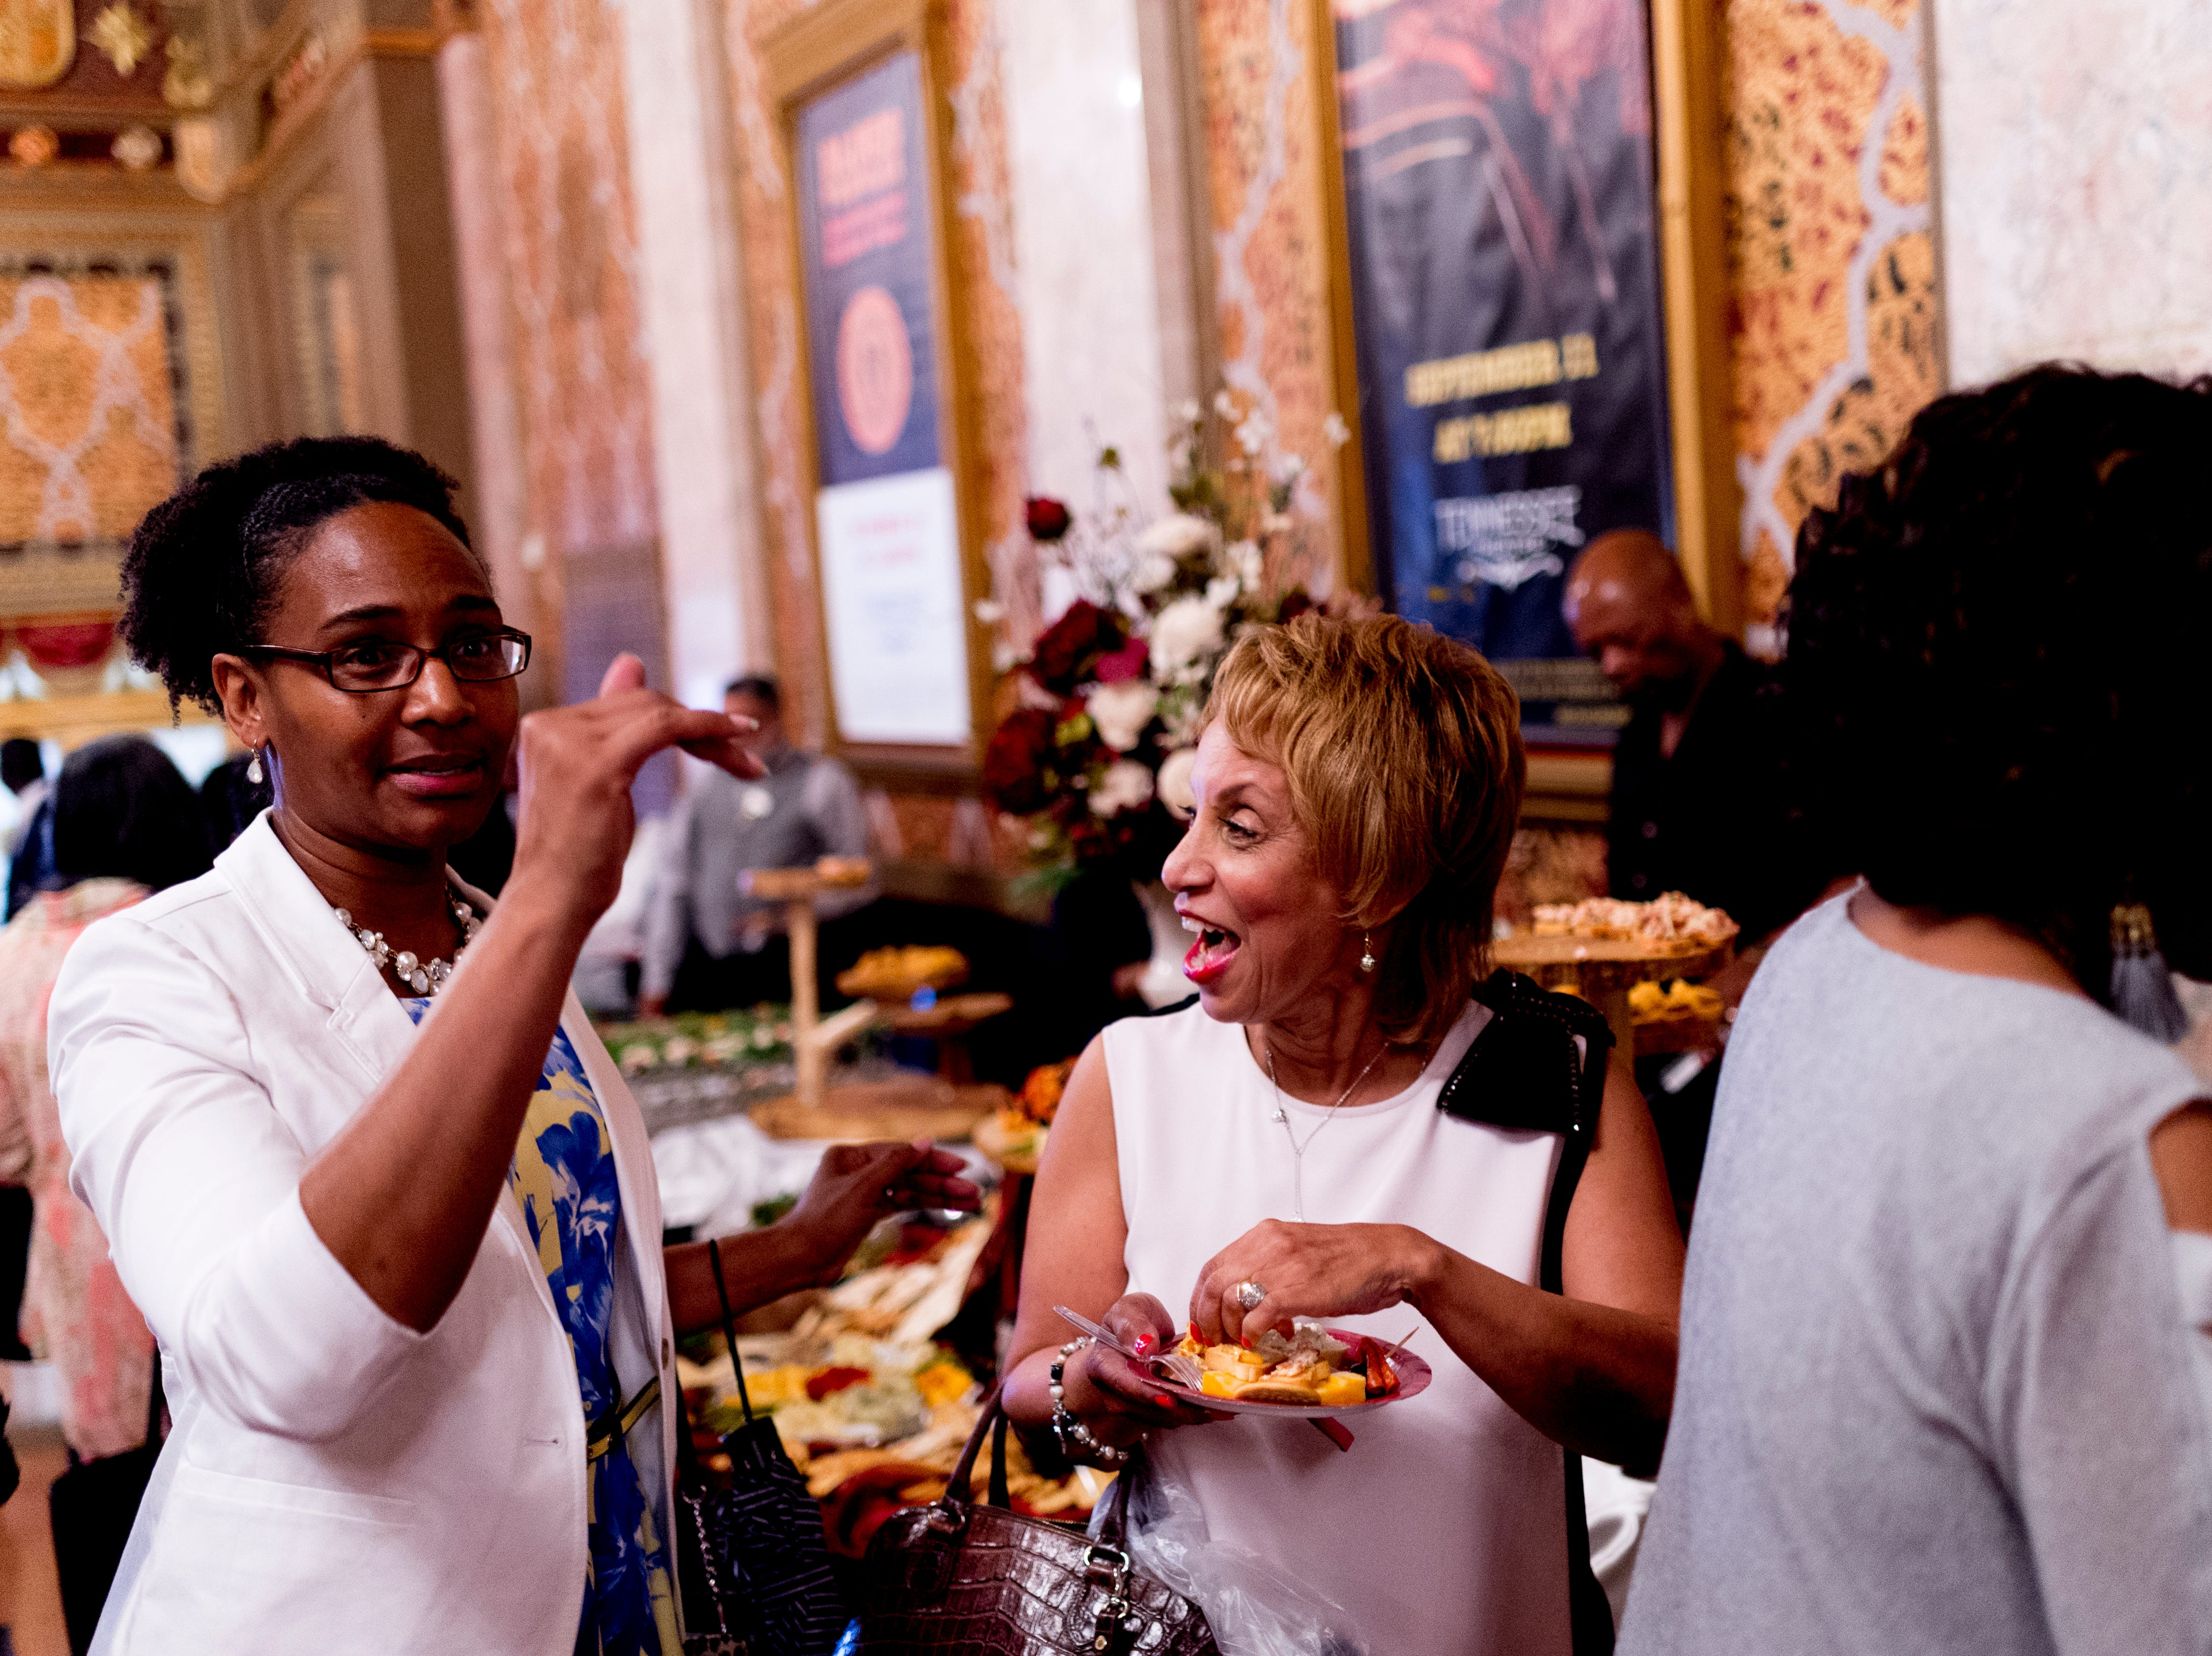 """Attendees share a laugh at the Beck Cultural Center's """"Eighth of August"""" commemoration at the Tennessee Theatre in Knoxville, Tennessee on Wednesday, August 8, 2018. Filmmaker Loki Mulholland and civil rights icon Joan Trumpauer Mulholland were special guests at the debut screening of Black, White & U.S."""